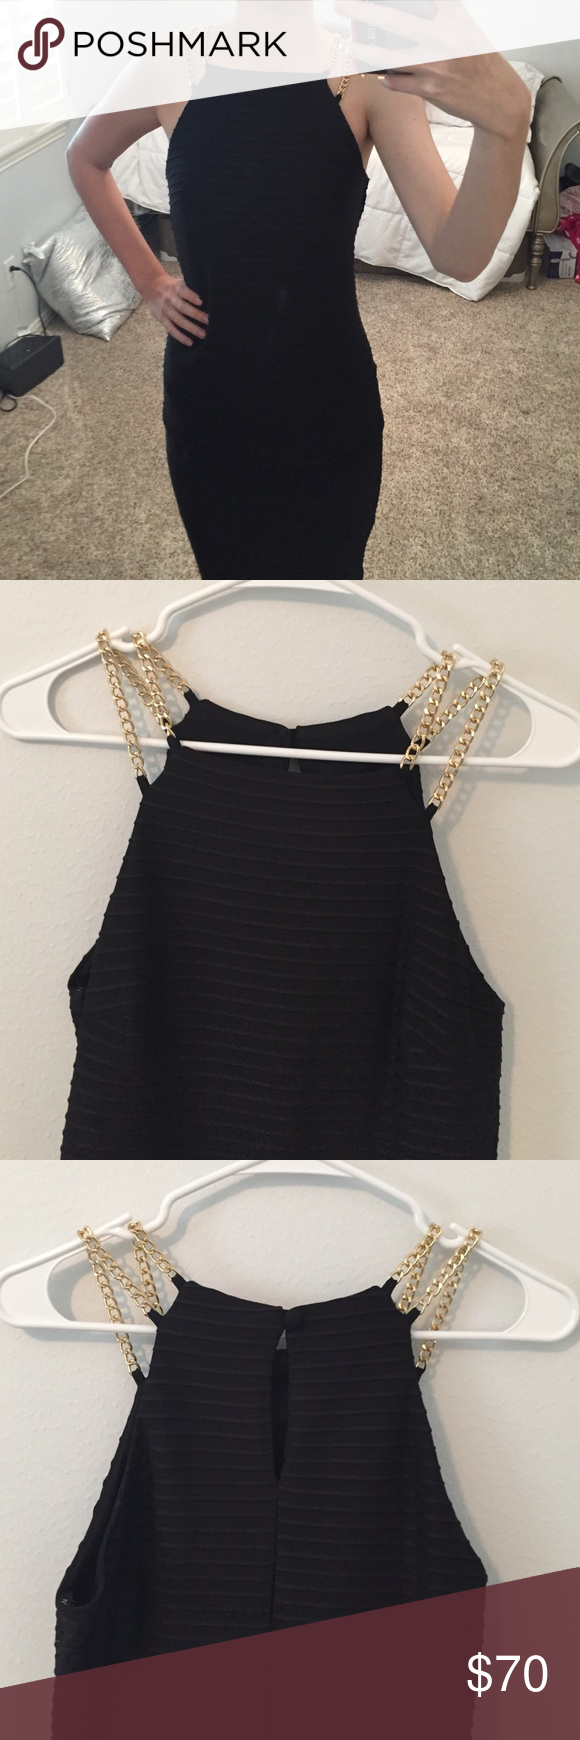 Black chain dress nwot tight black dress knee length with gold chain